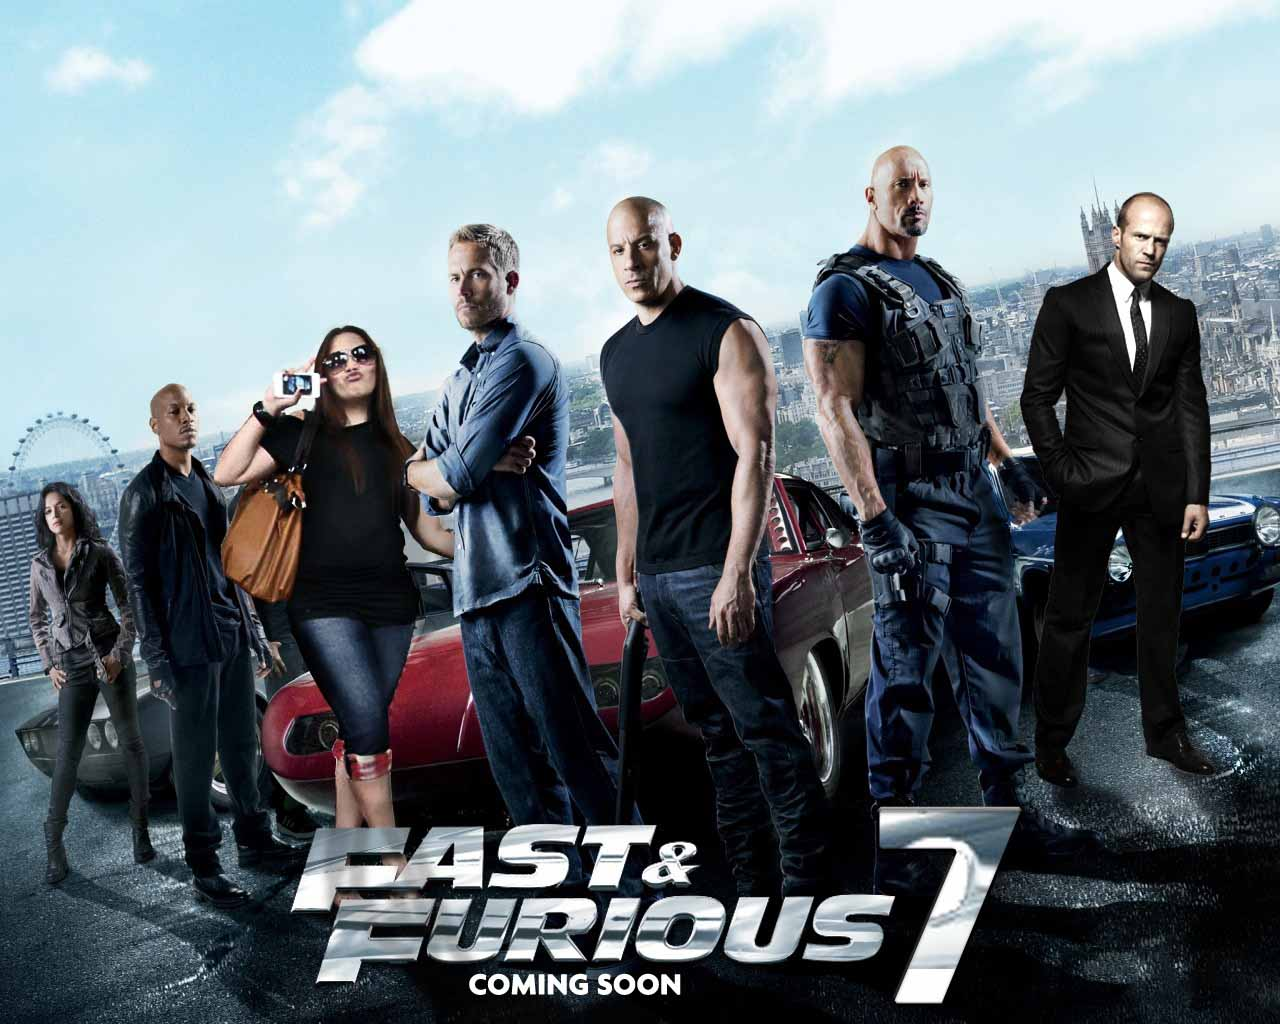 Fast & Furious 7 HQ wallpapers